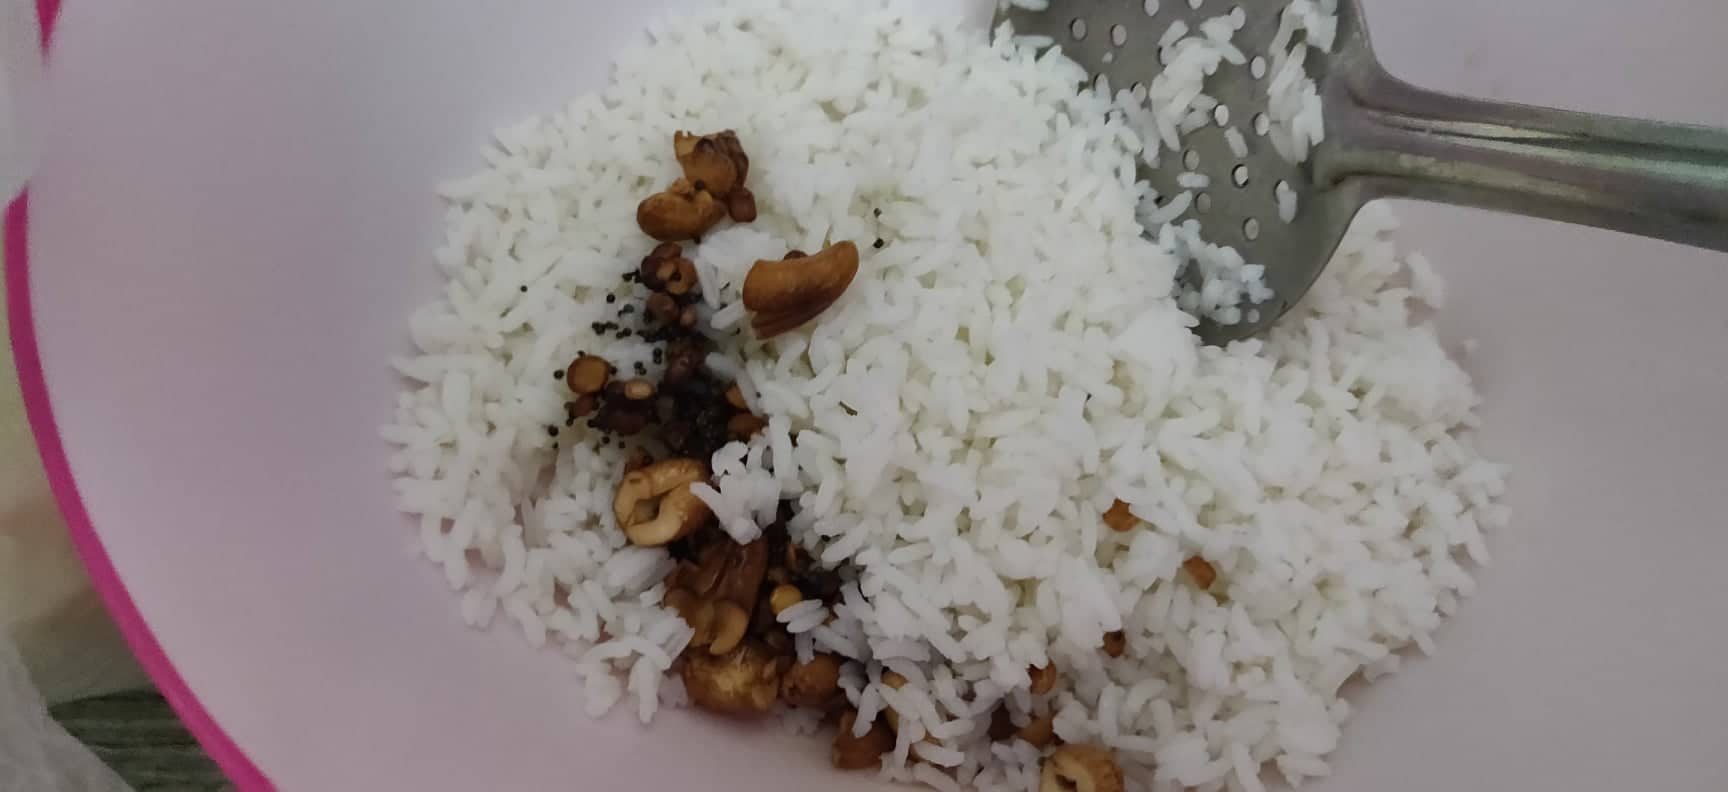 curry_leaves_rice - 82343498_779964115841568_7869914892835225600_n